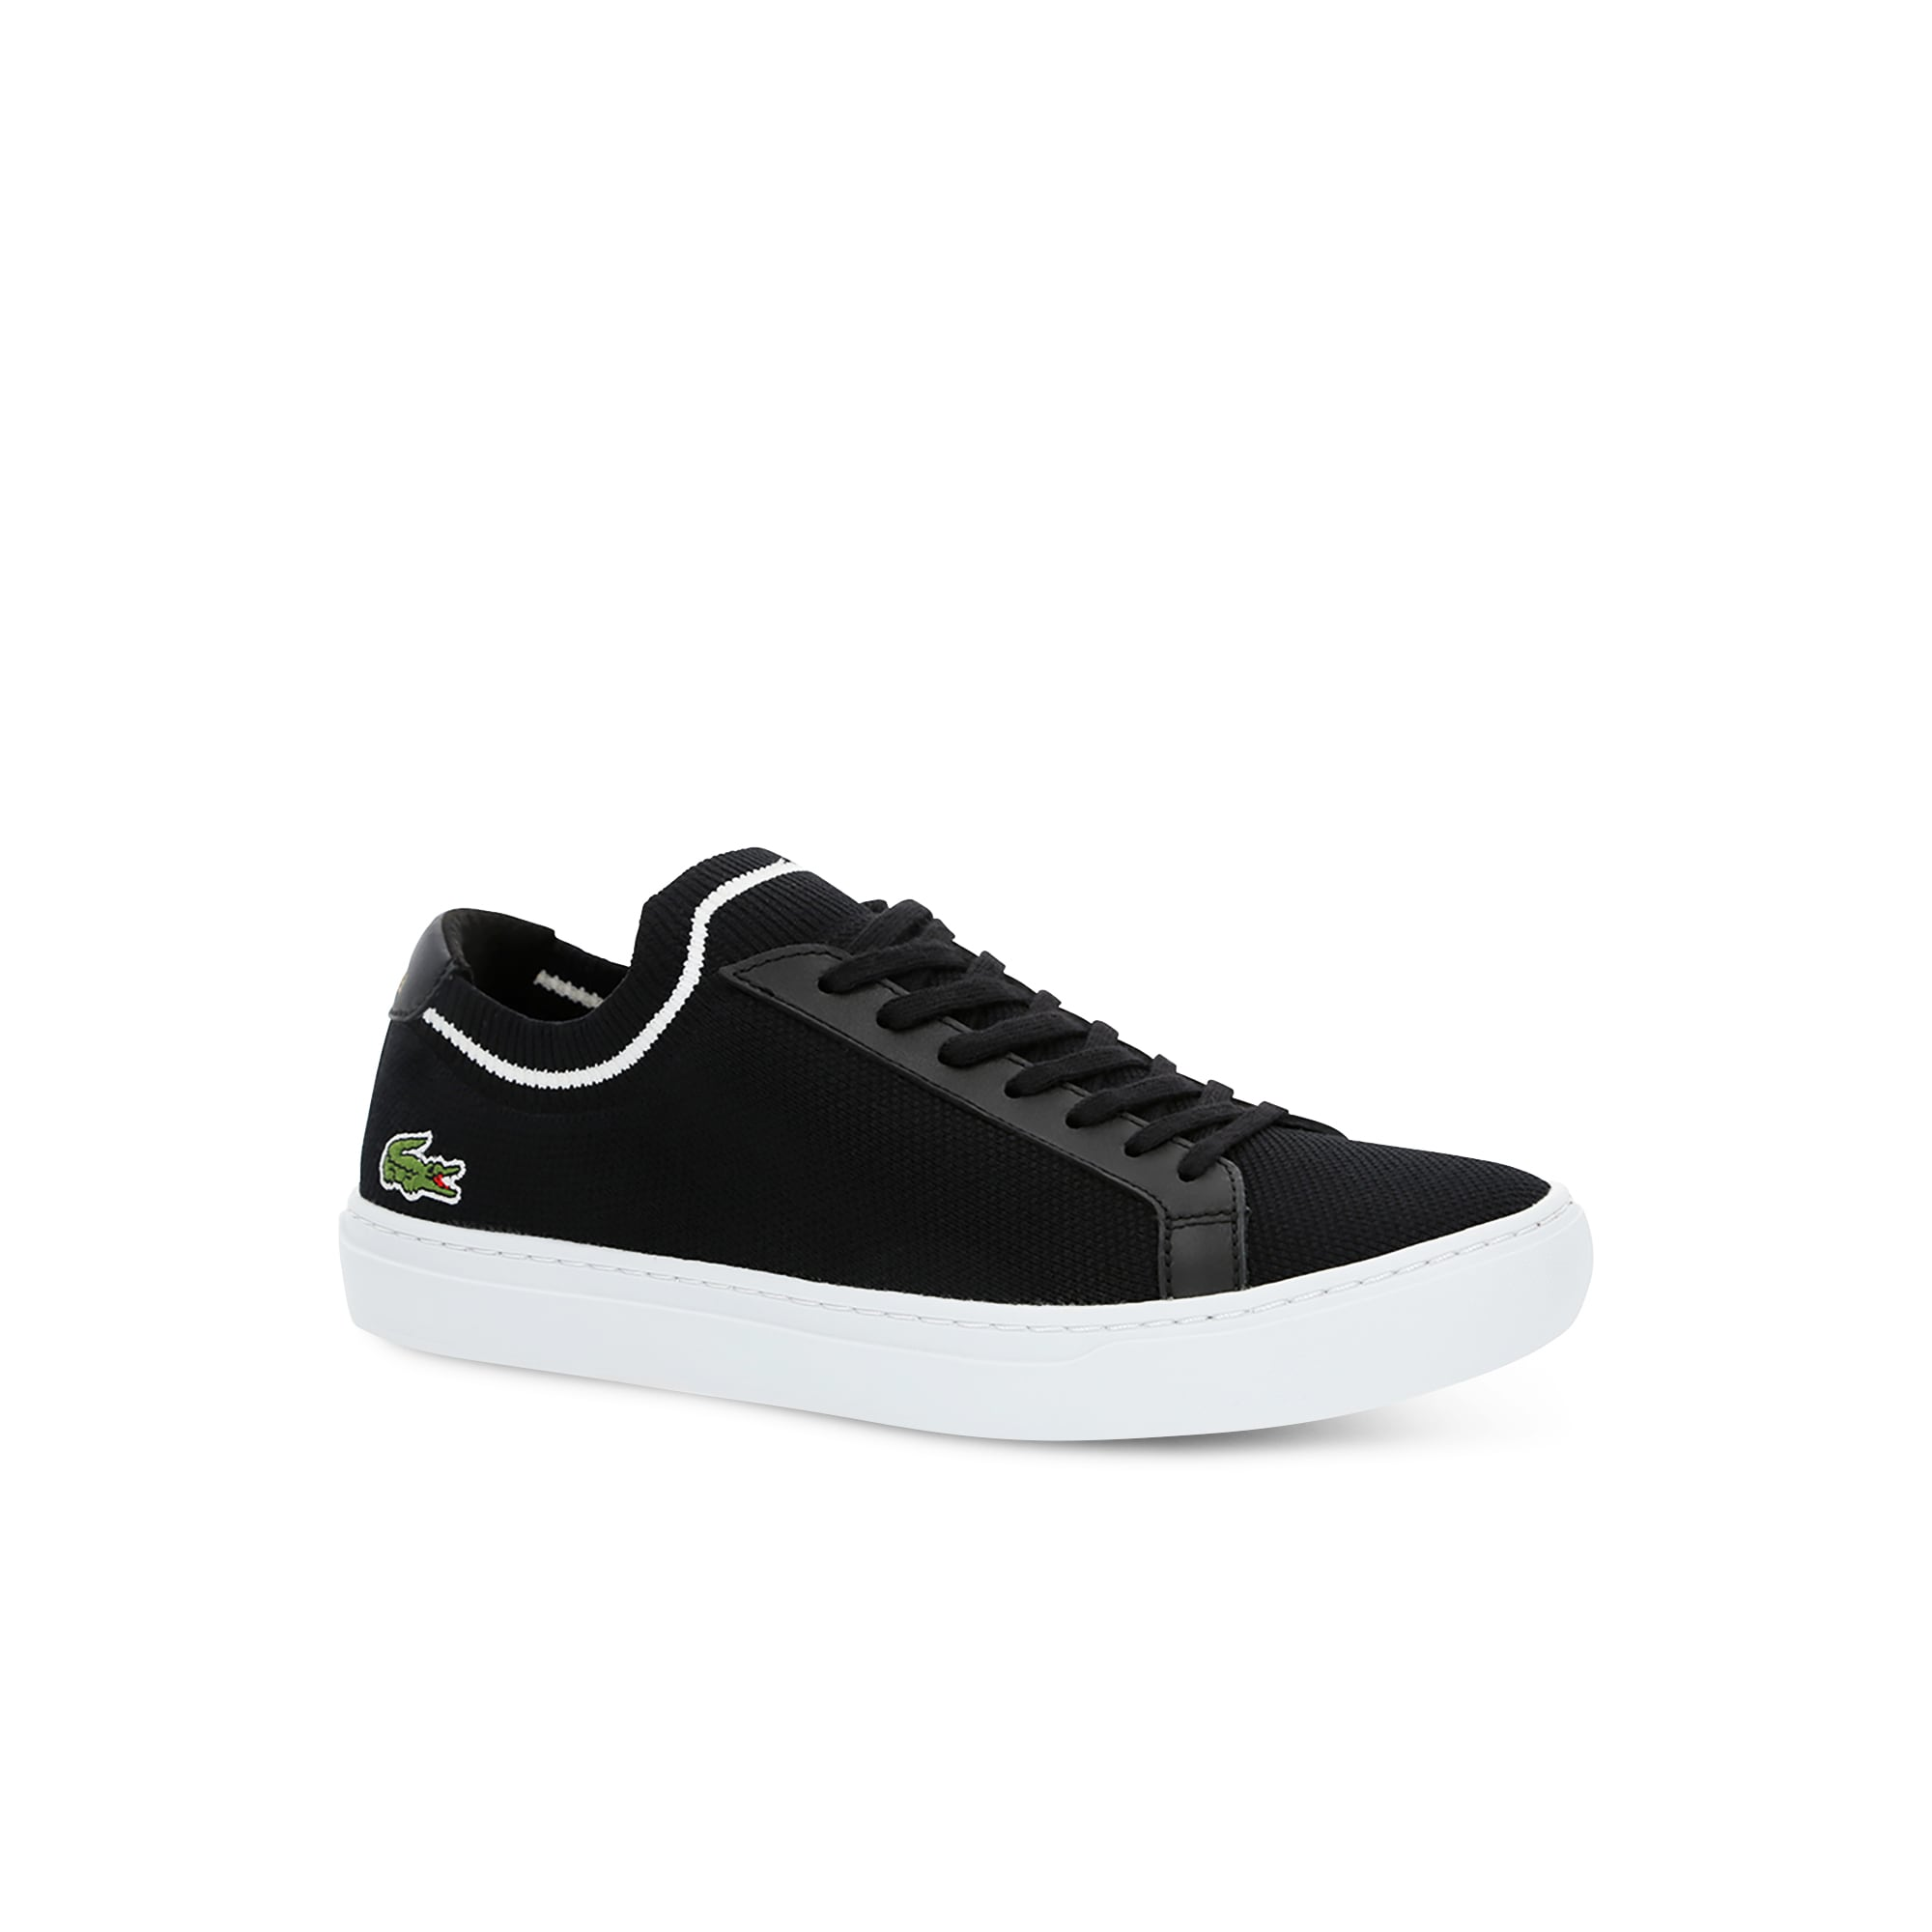 ed413f4a2bf14 Lacoste shoes for men  Sneakers